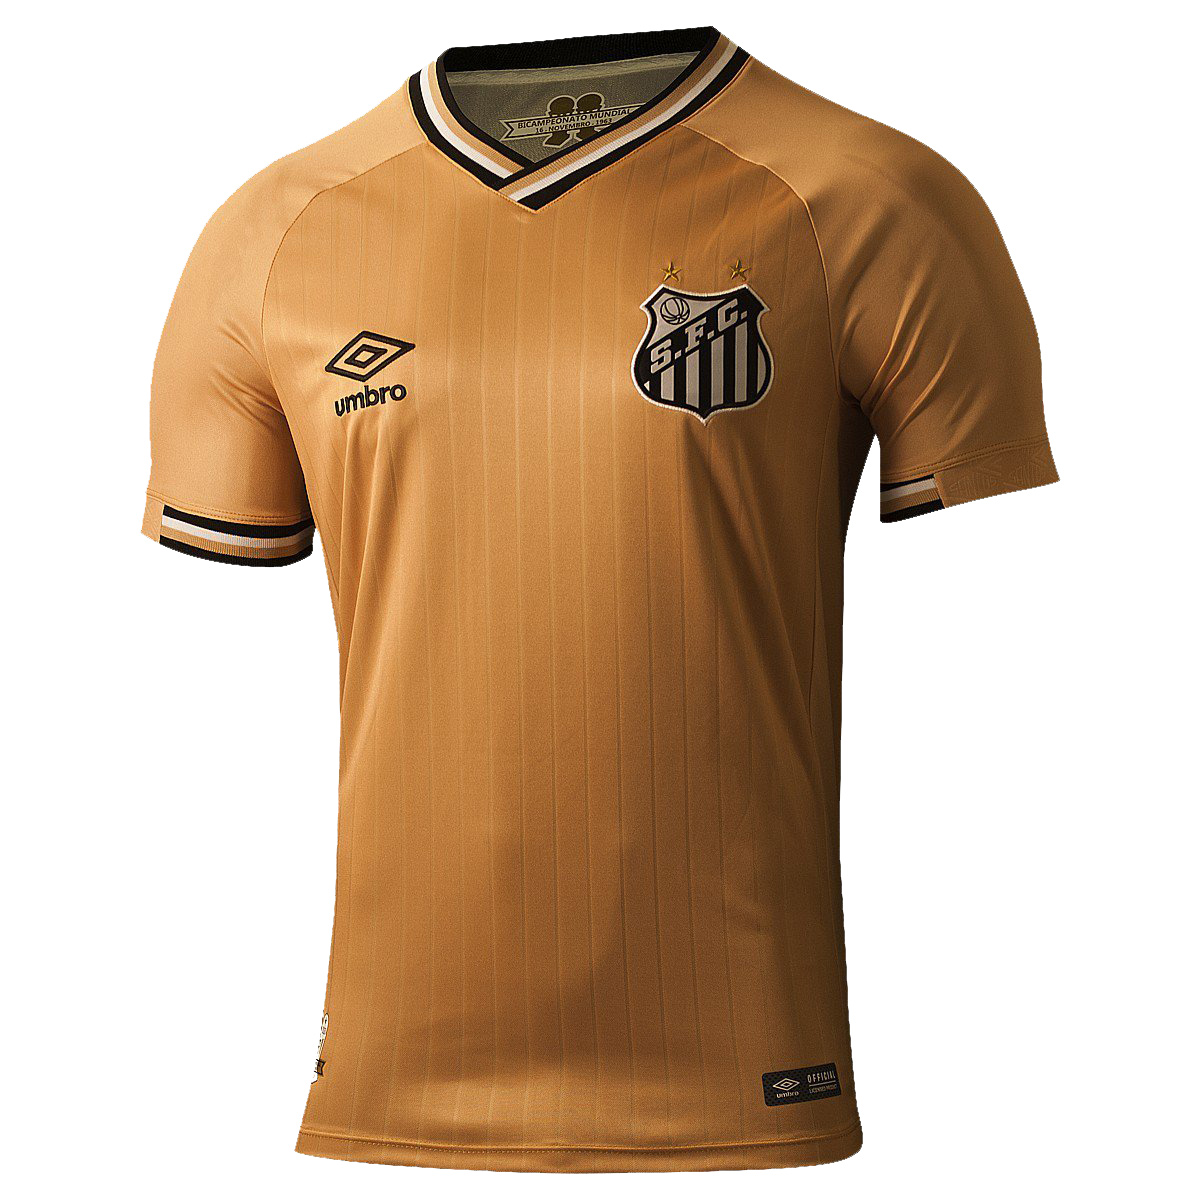 Click to enlarge image santos 2018 umbro third kit a.jpg ... f1409c98d2d20